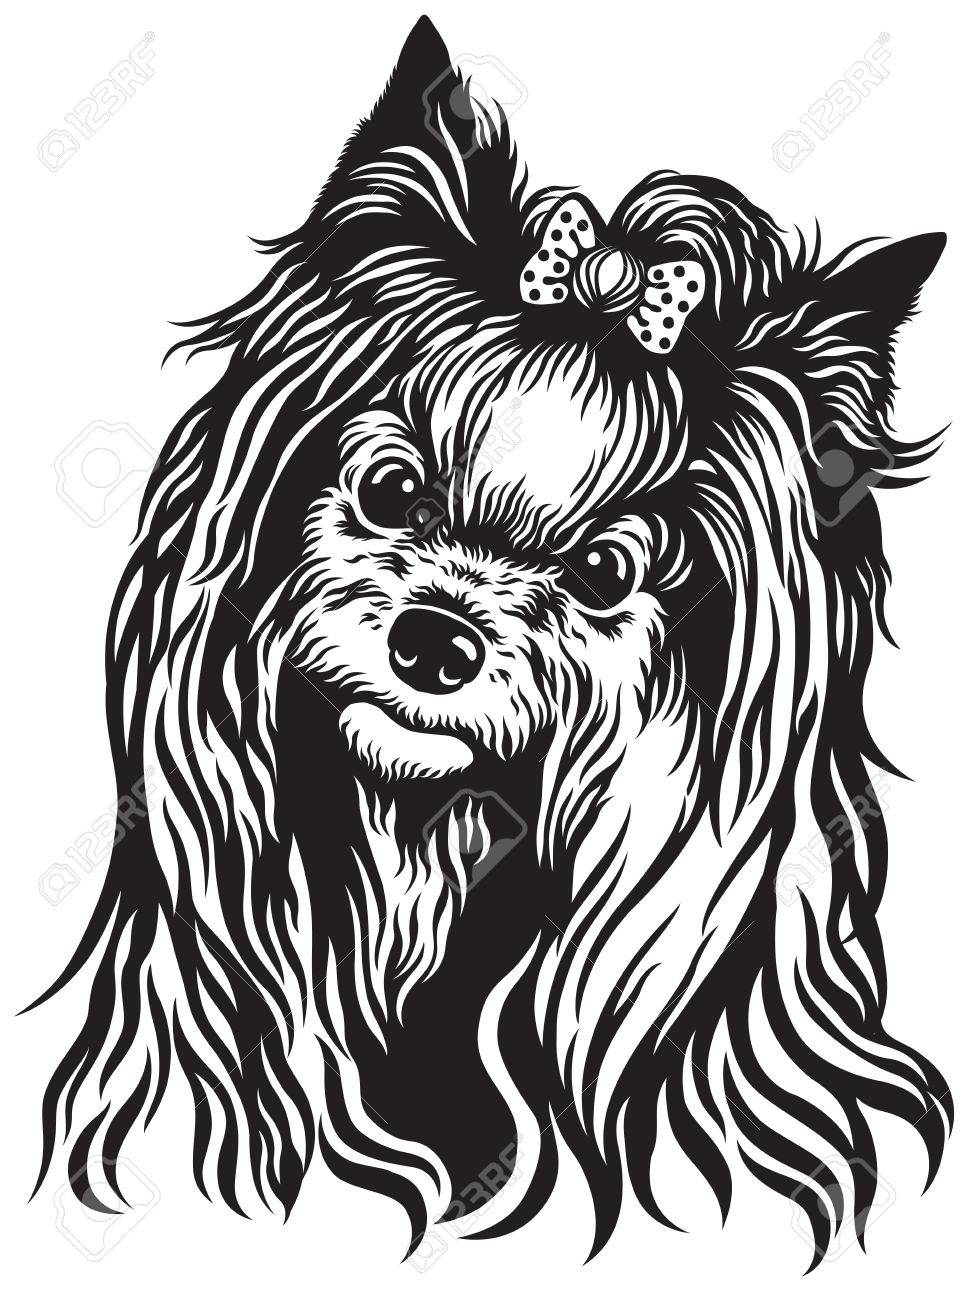 yorkshire terrier breed dog head, black and white image.